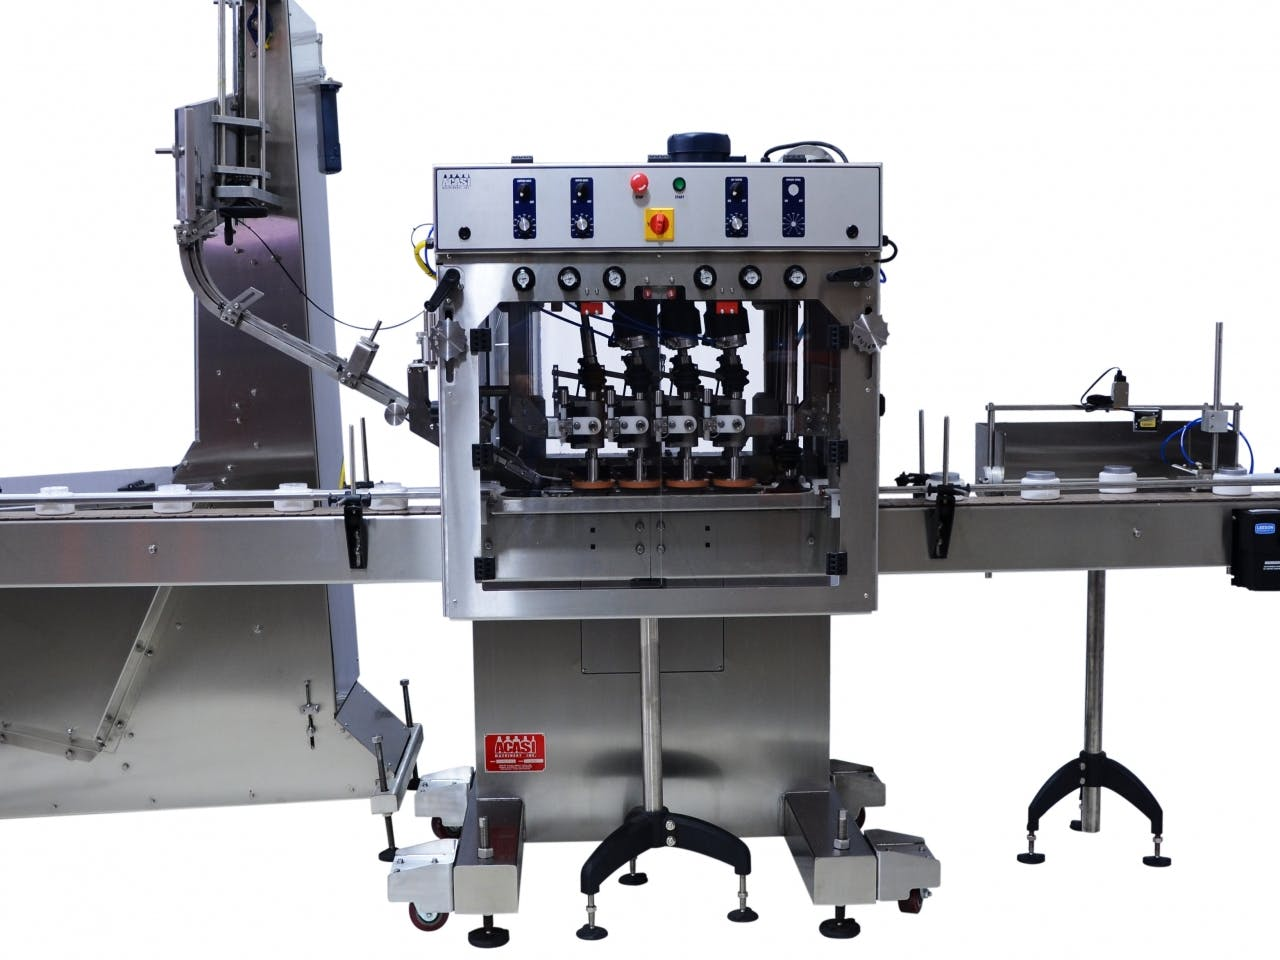 Automatic Inline Bottle Capping Machine Model TruCap-X-WFall Bottle capper sold by ACASI Machinery